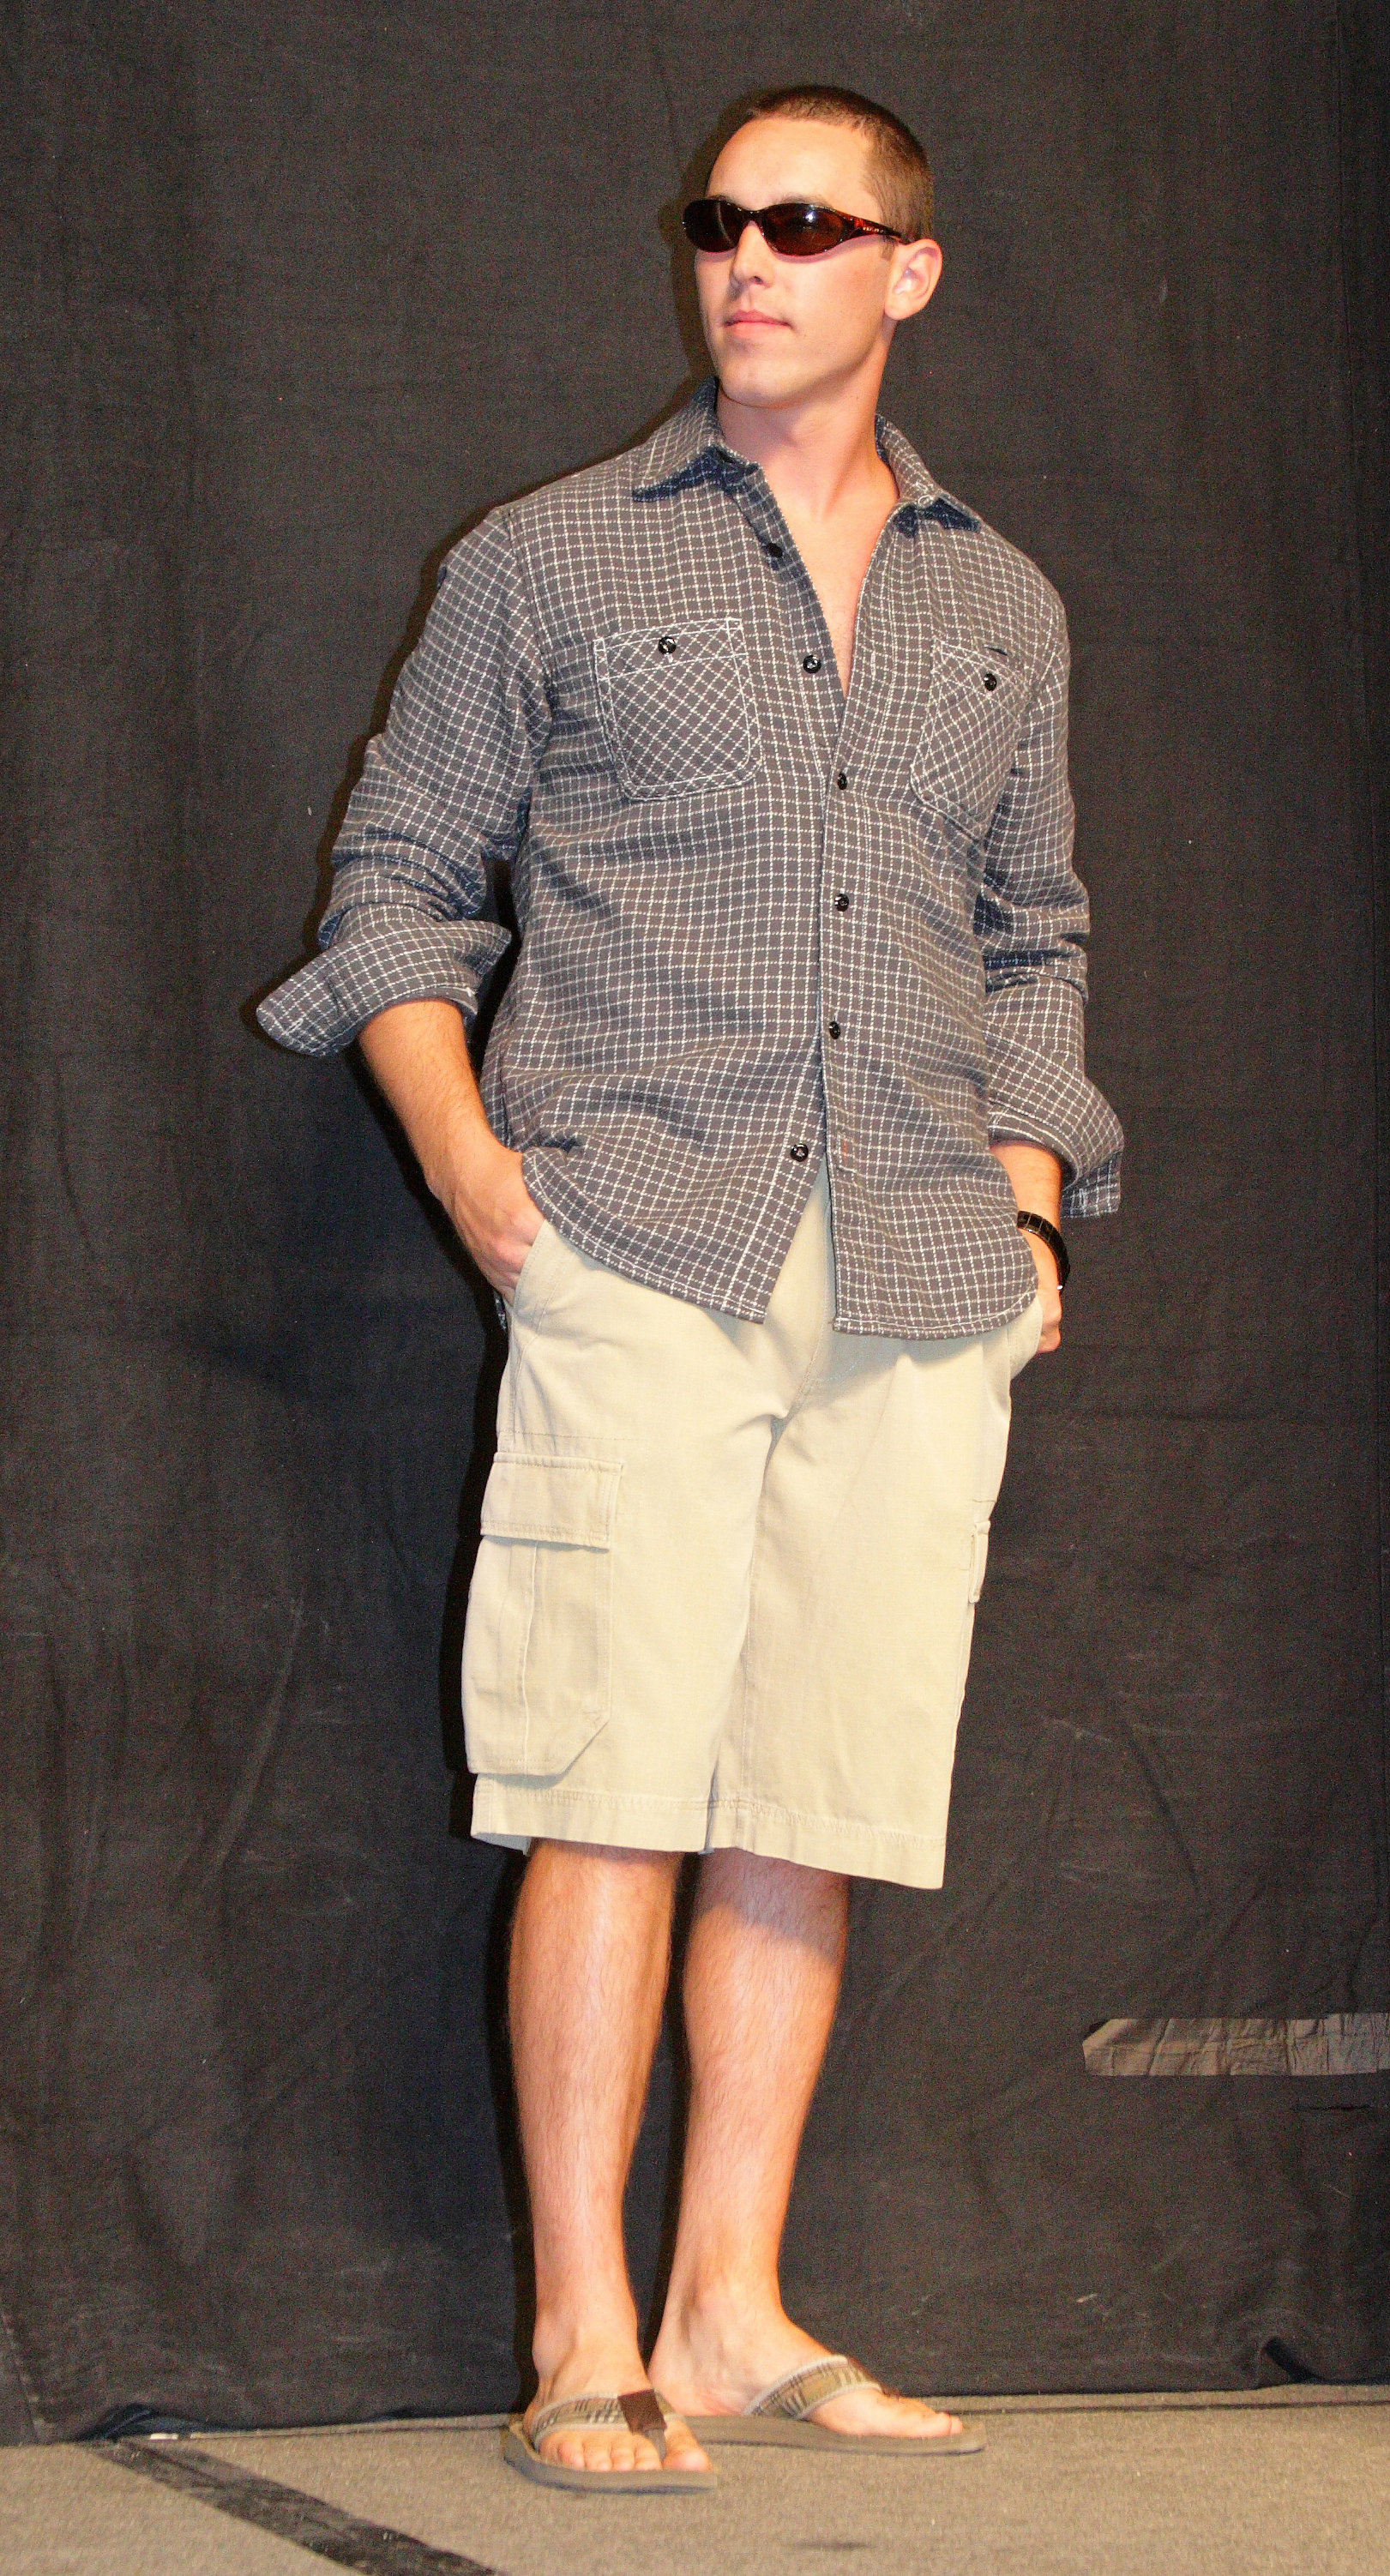 Resort Casual Dress For Men Pictures to Pin on Pinterest - PinsDaddy